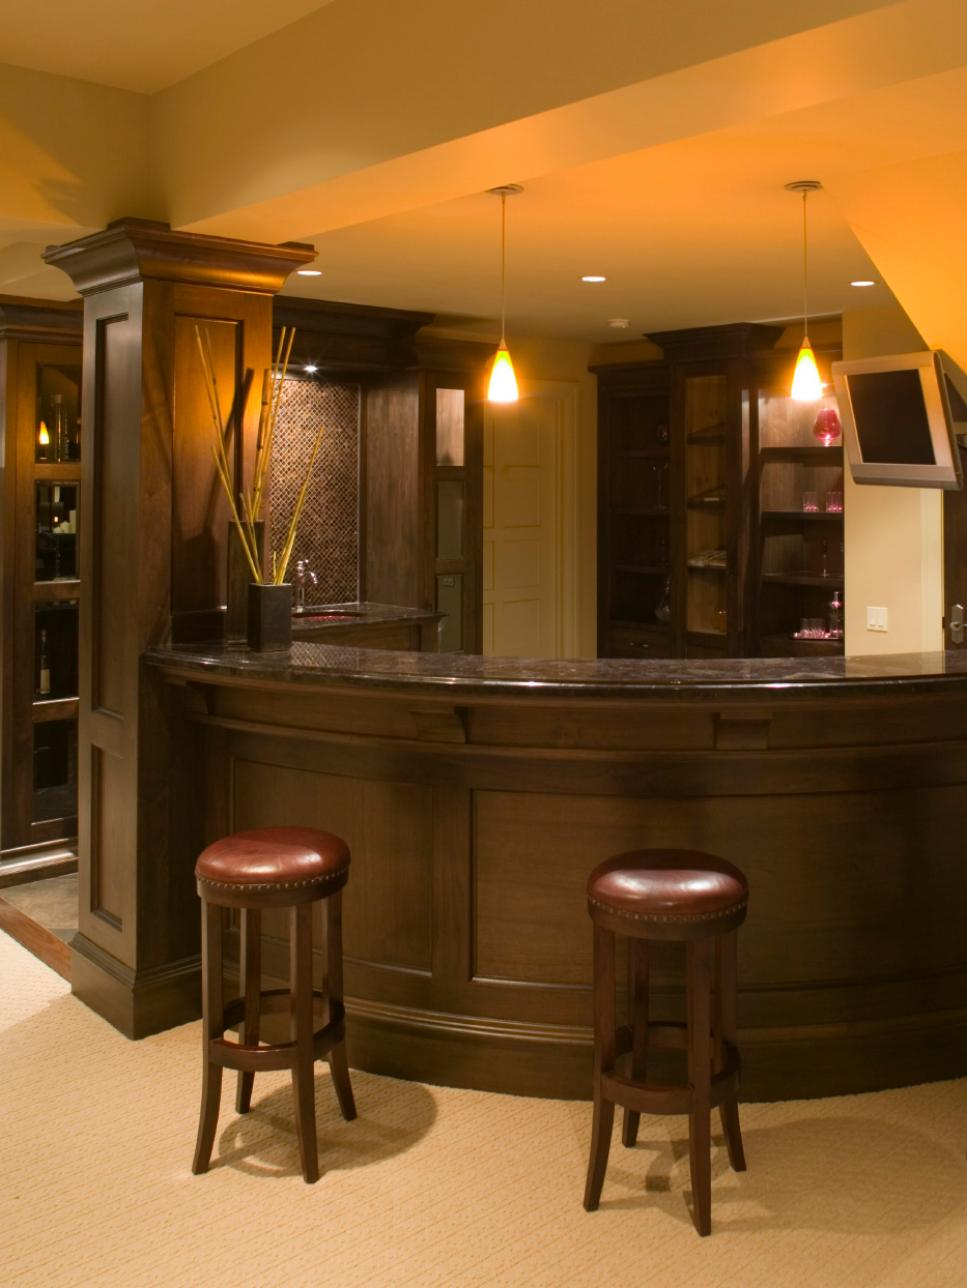 Home bar ideas 89 design options kitchen designs Residential bar design ideas